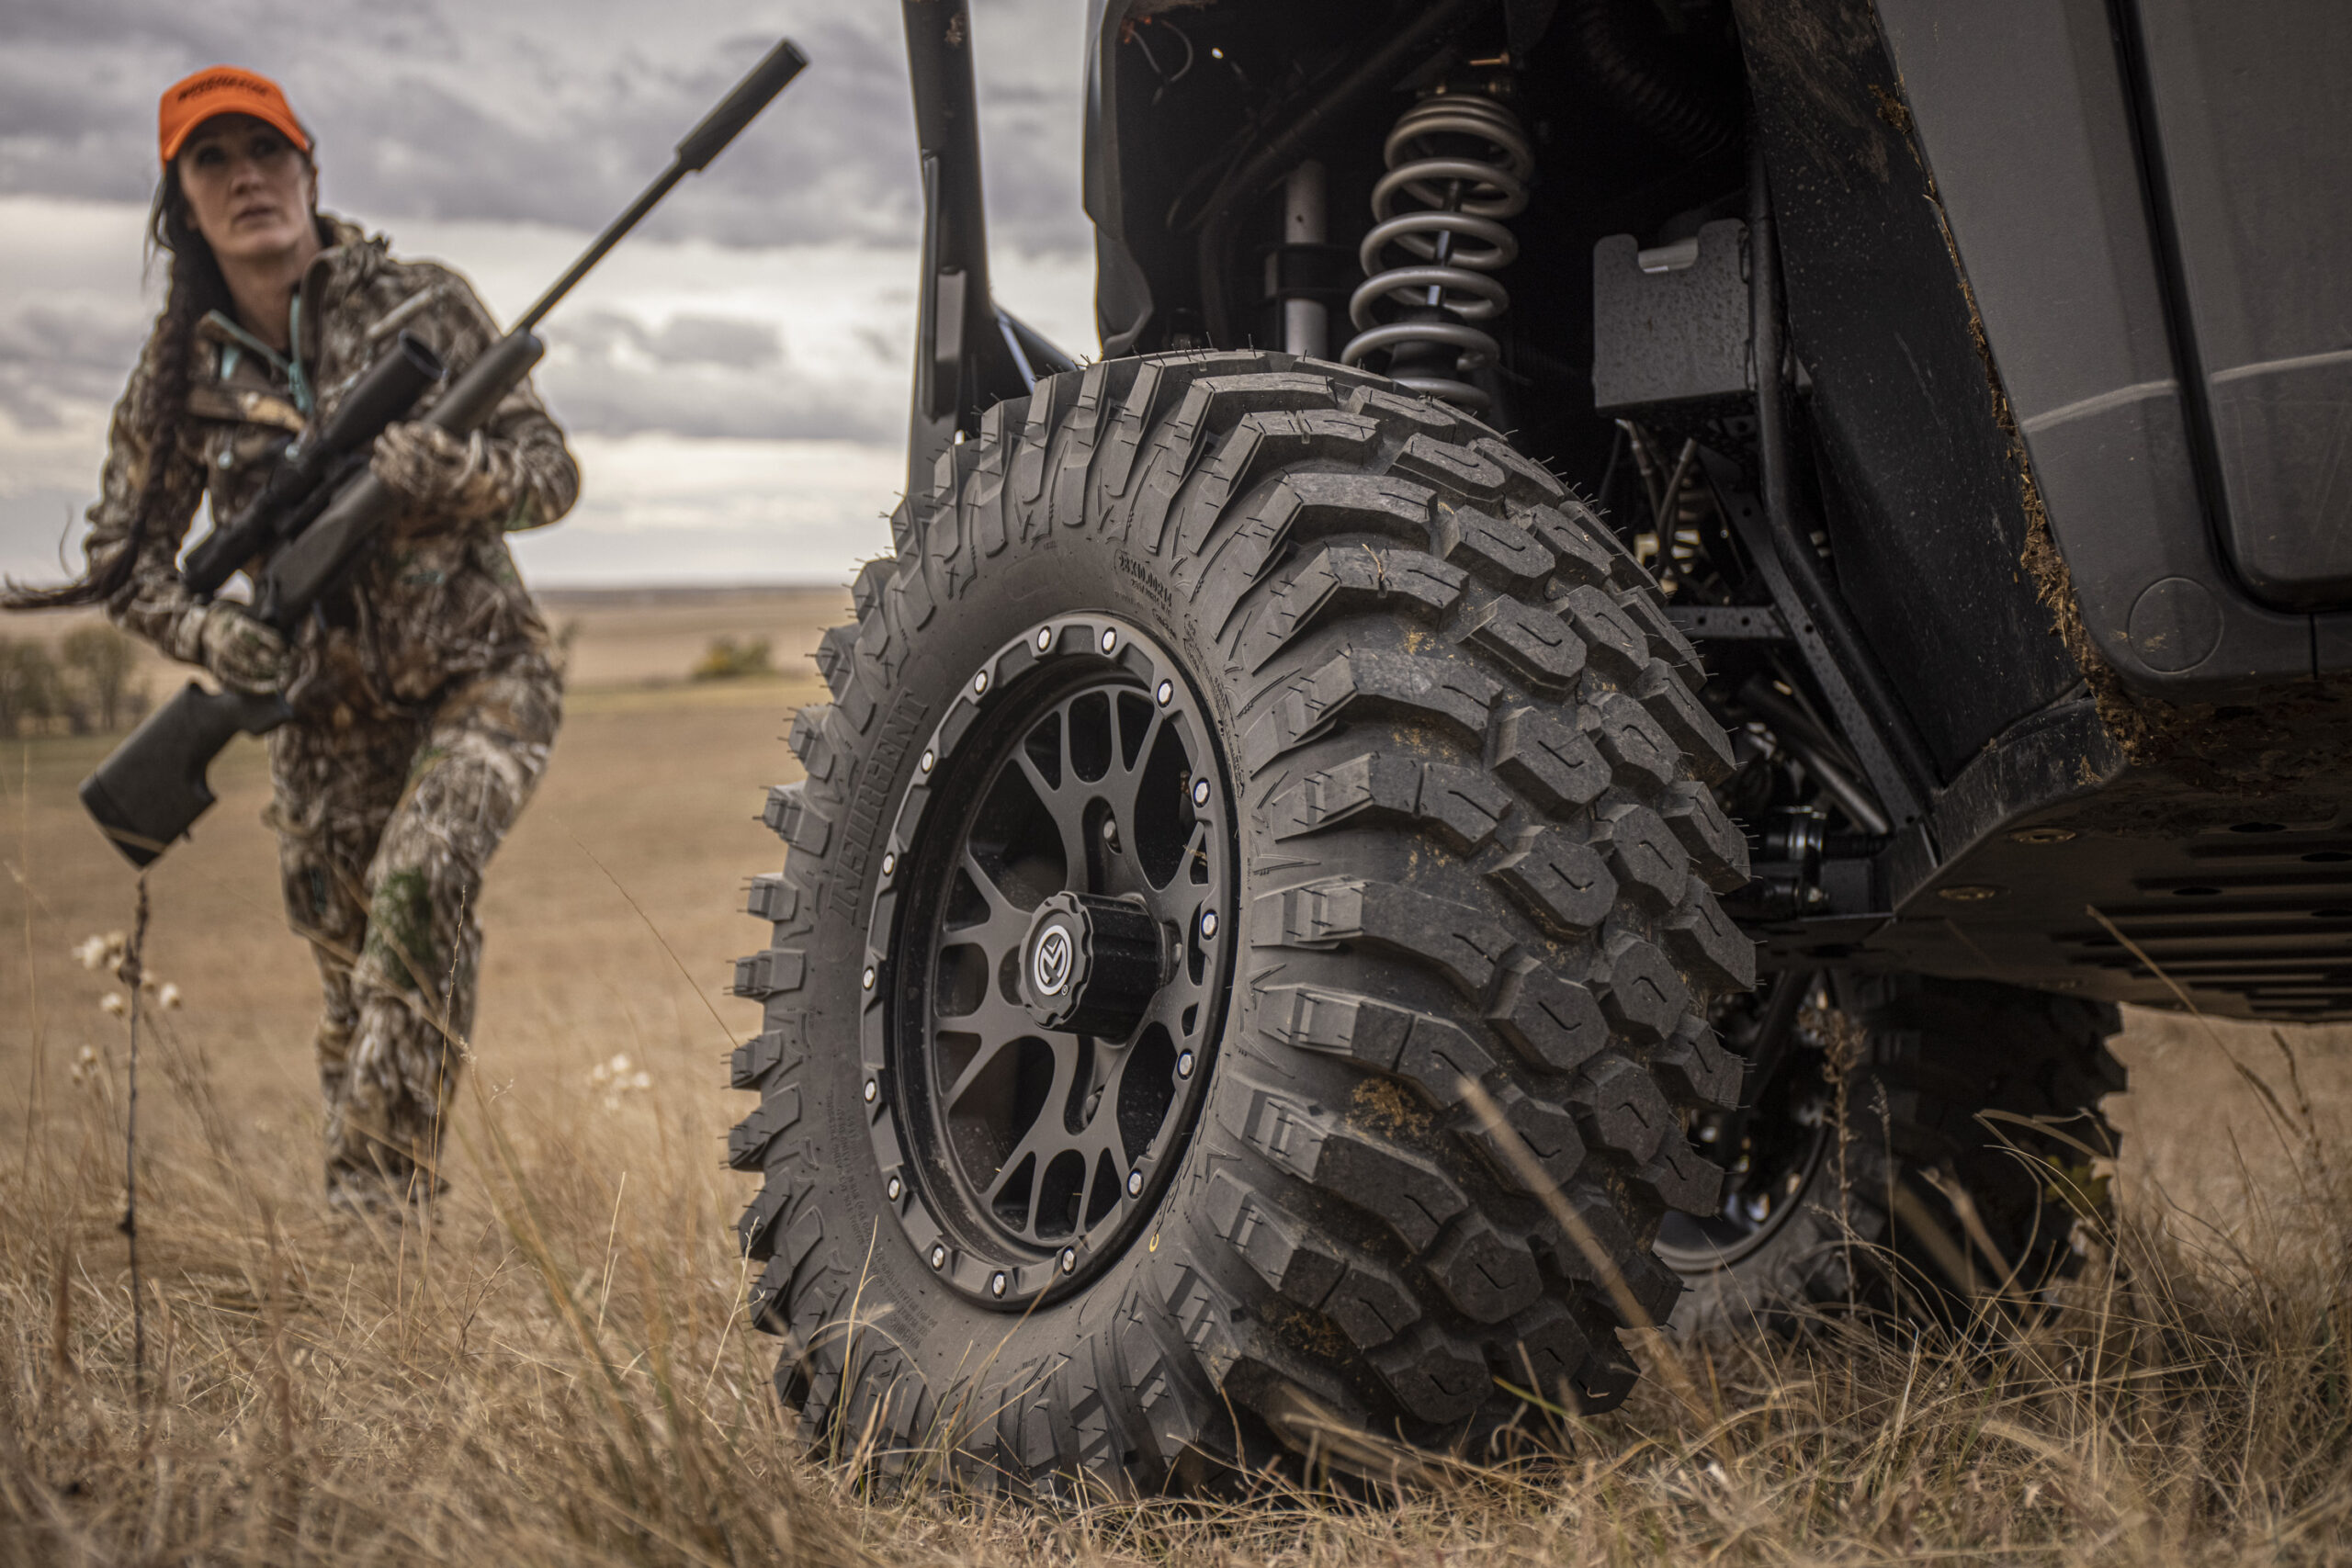 A Review of the Best 30 Cal Suppressors in 2021